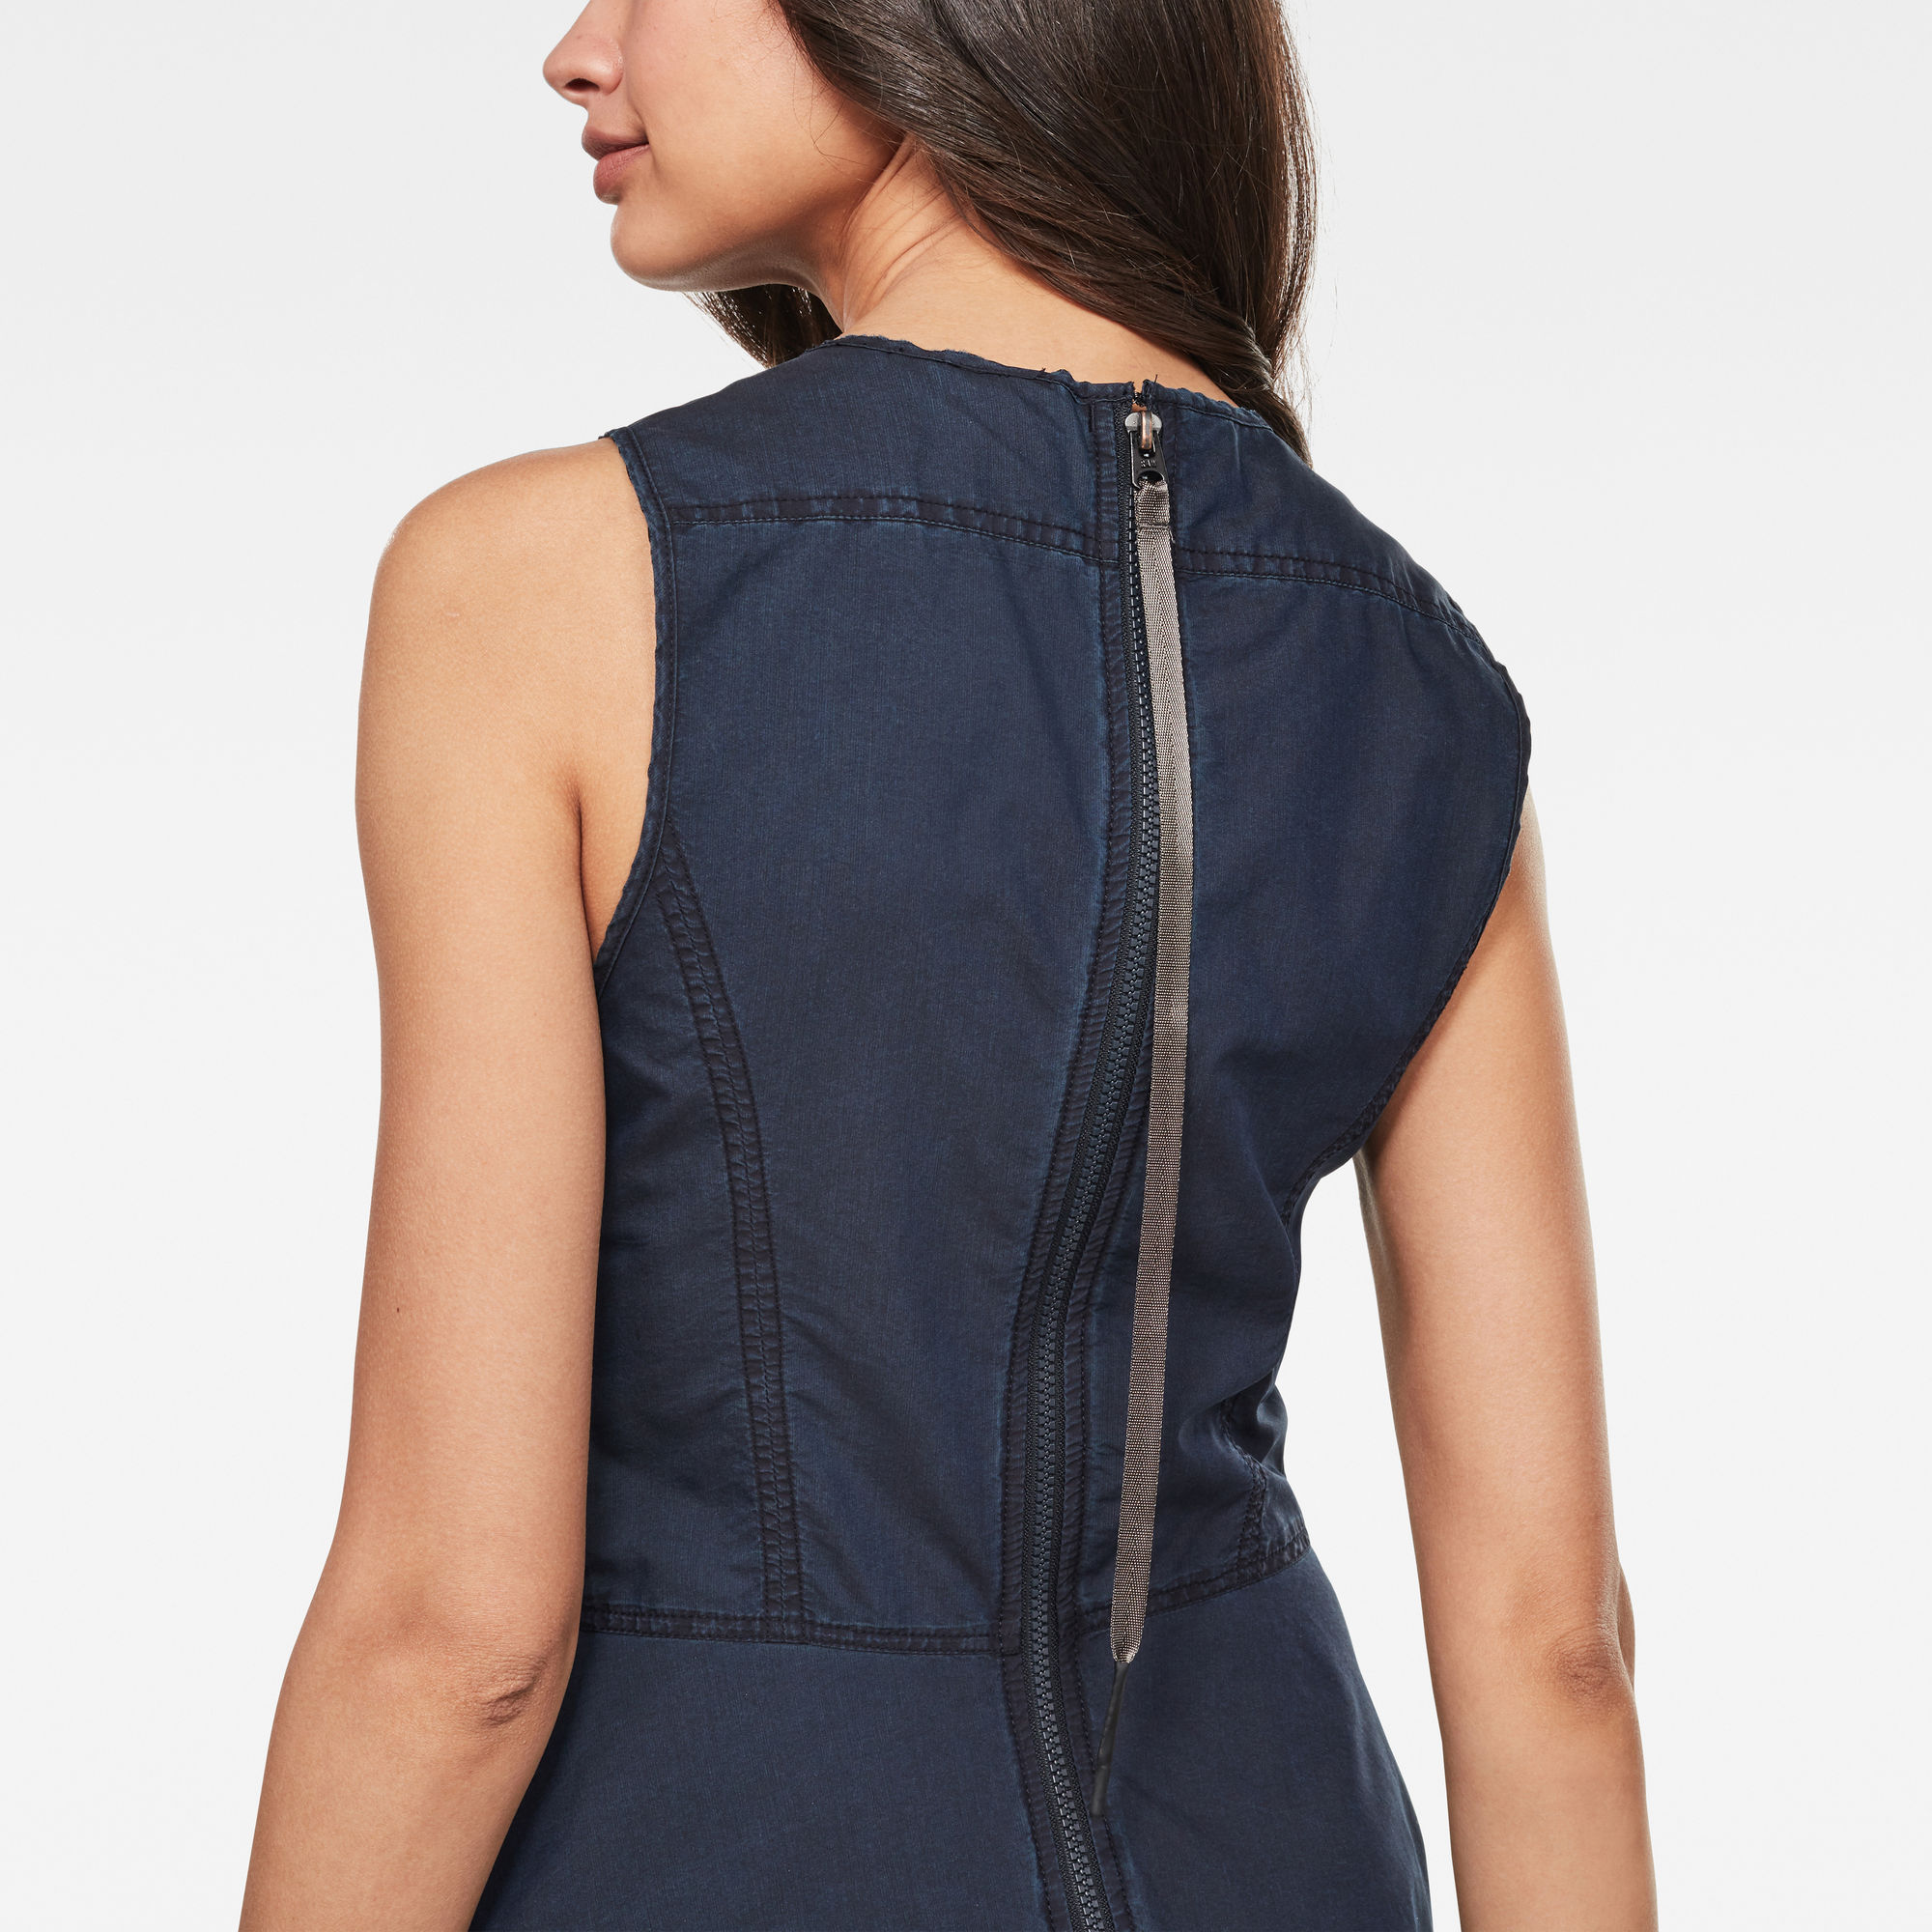 G Star RAW Fit and Flare Jurk